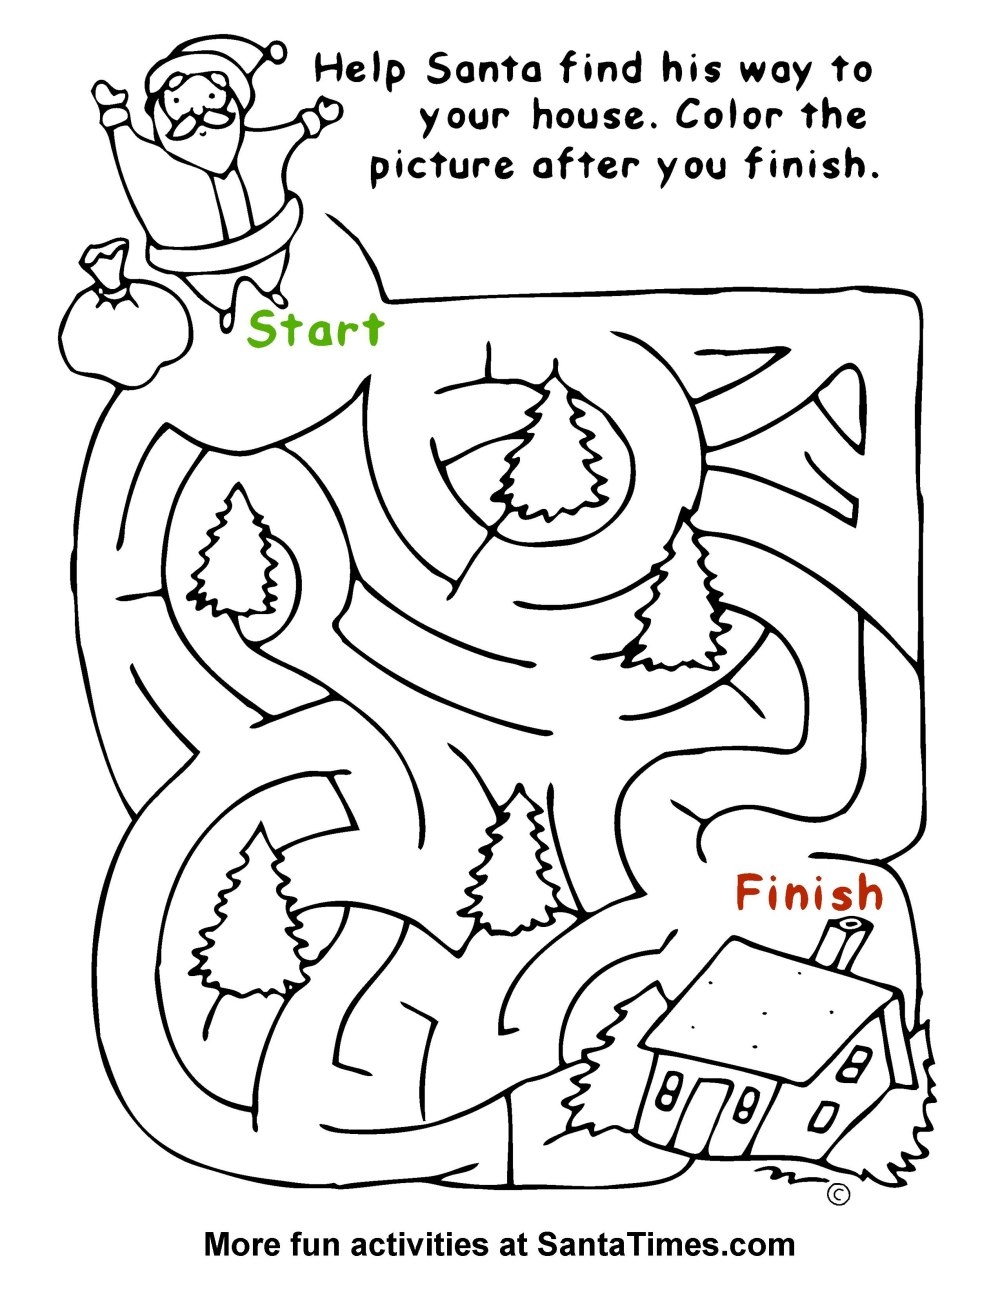 easy santa maze for the little ones christmas coloring page activity